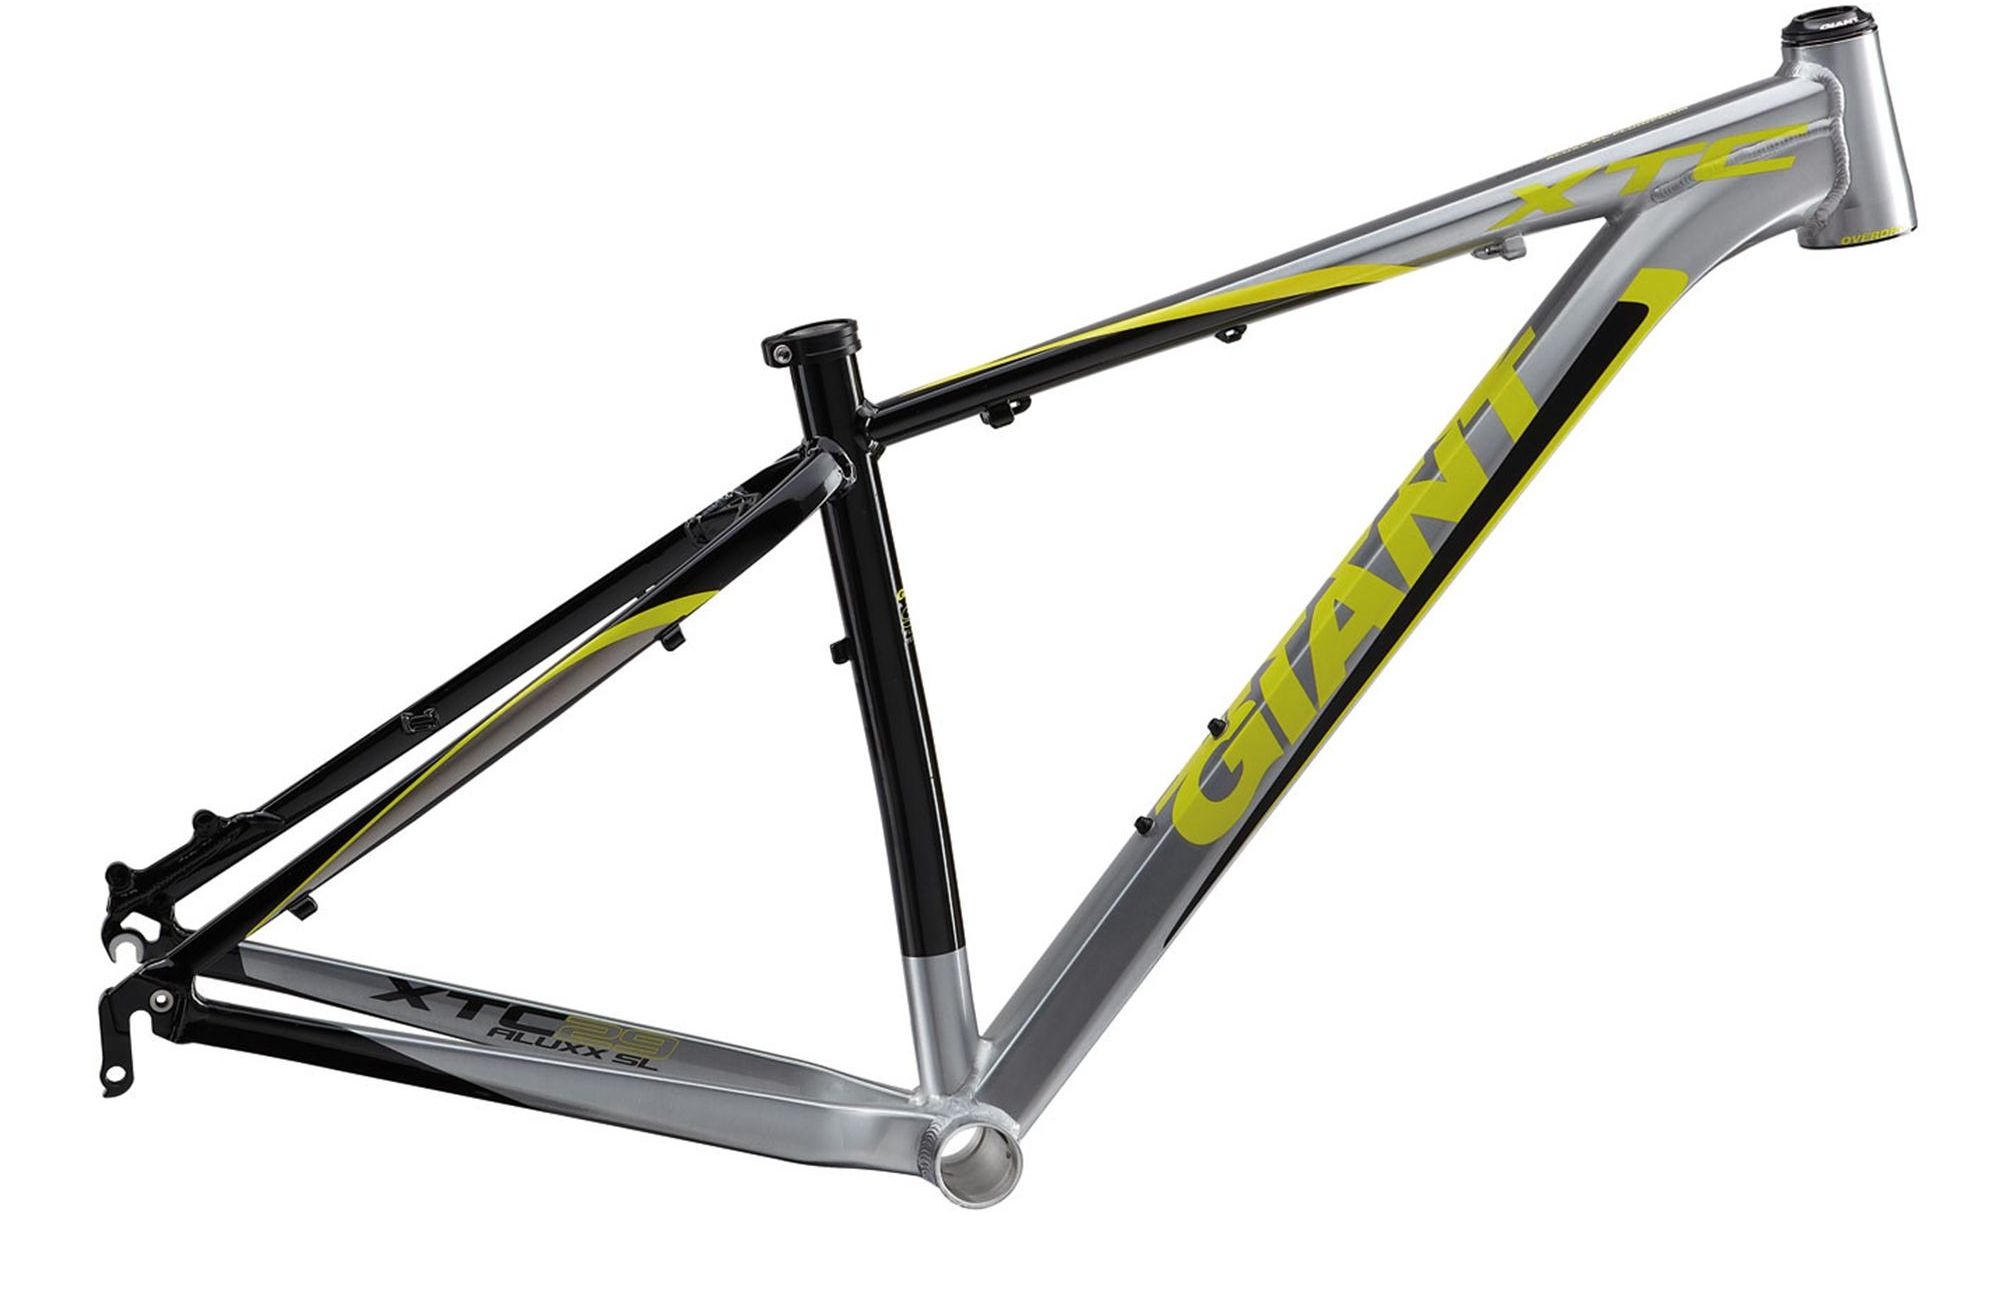 Cuadros 29er Giant Xtc 29er Frameset 2013 Review The Bike List